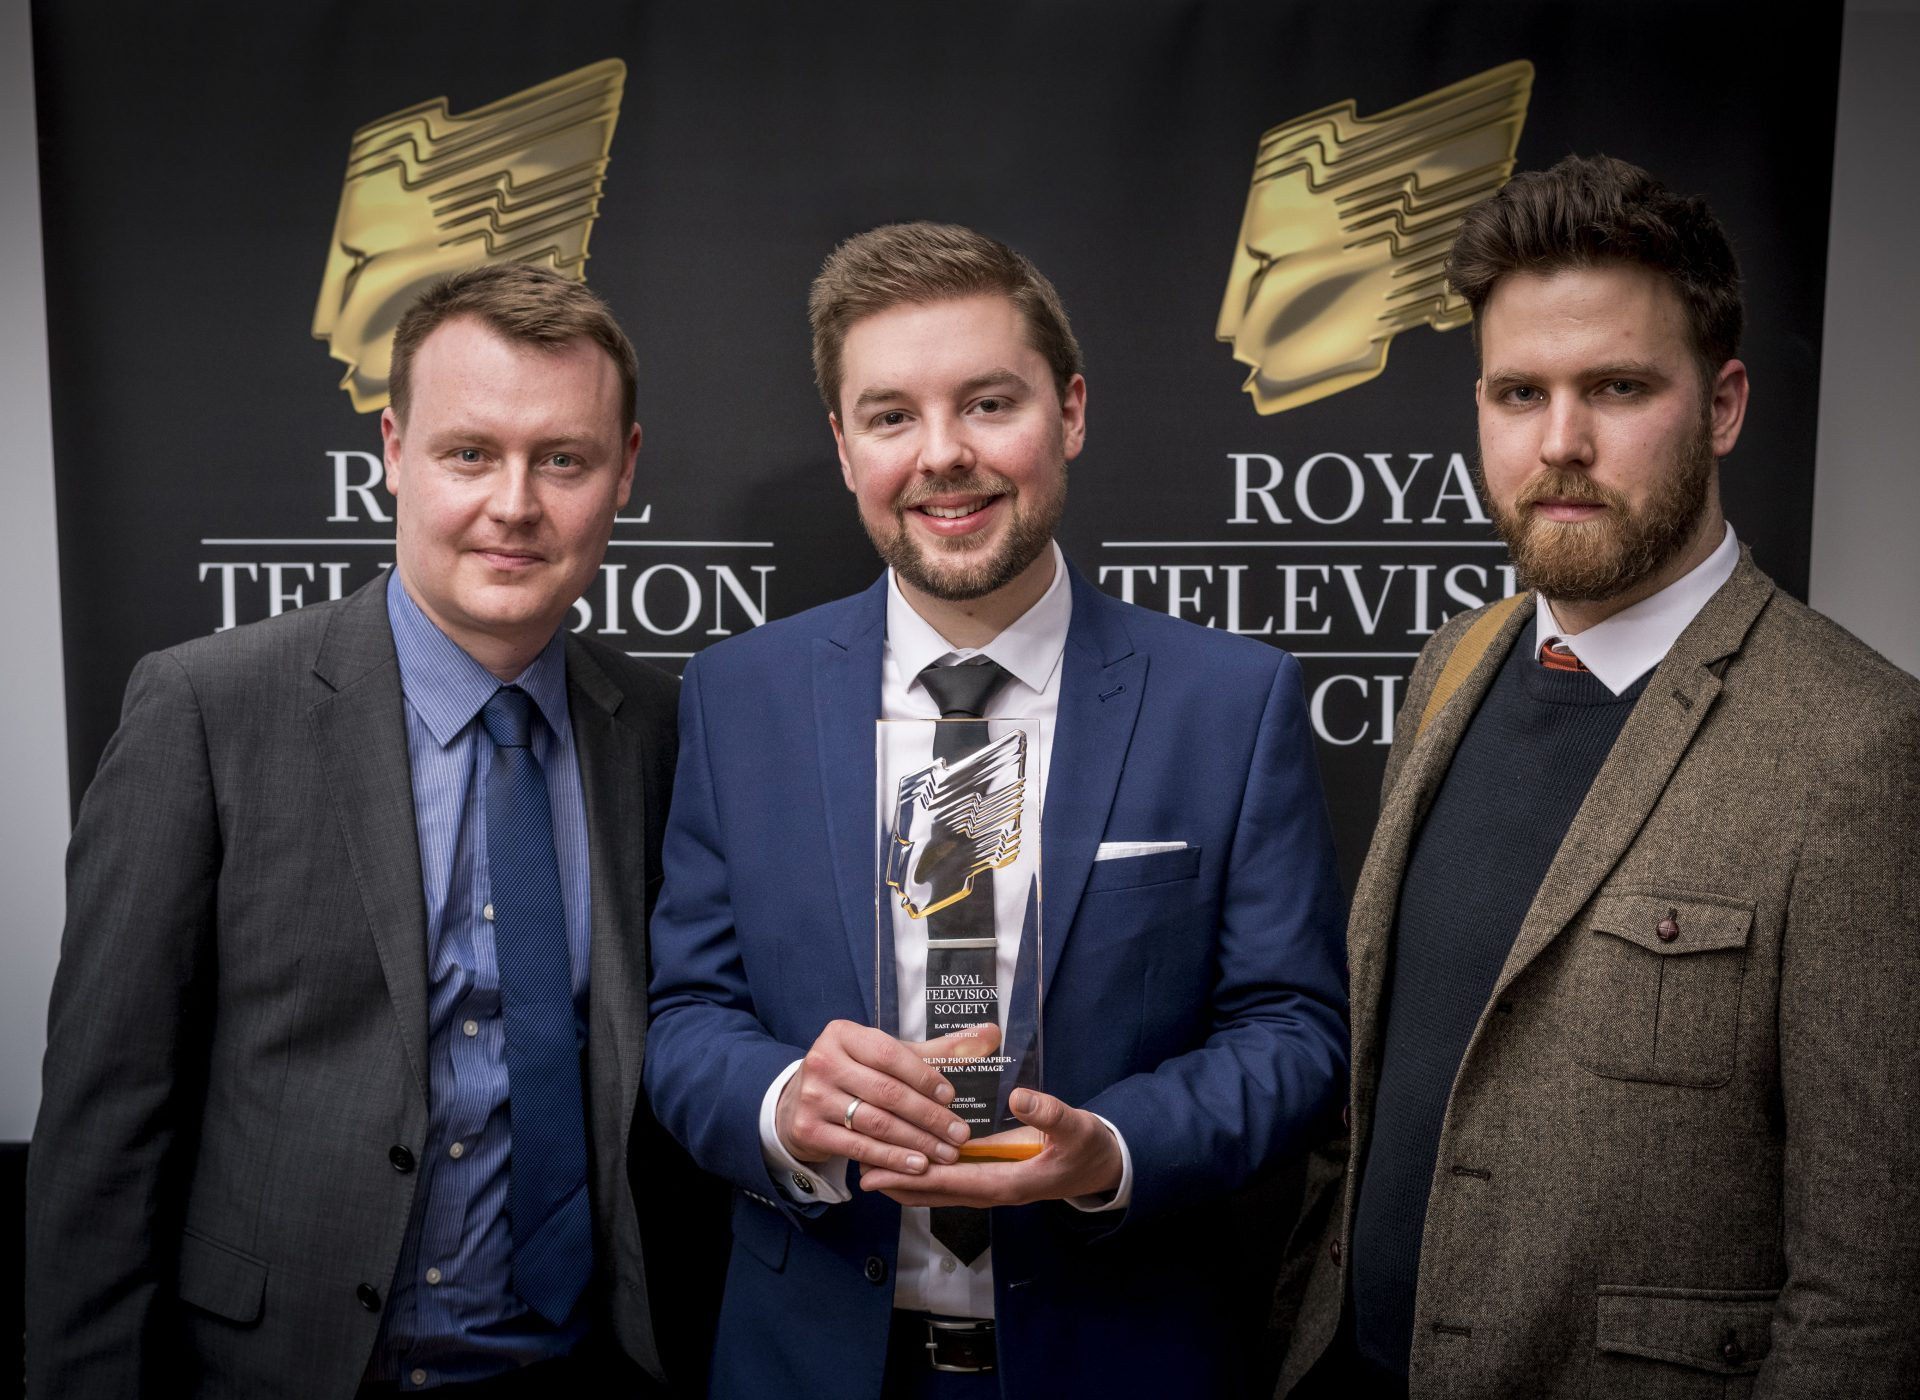 Forward's Creative Director Tom Martin and Stuart Dennis and Ben Piper from Wex Photo Video at the awards ceremony